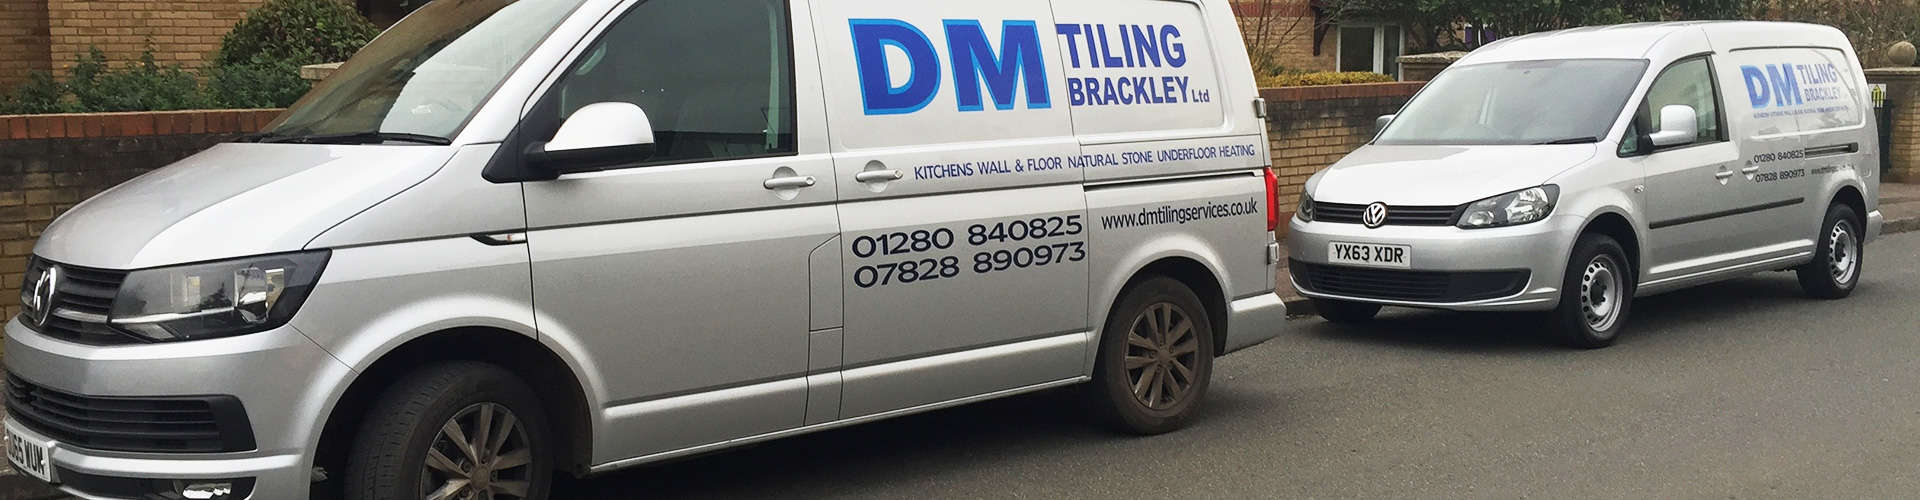 DM tiling contractors in Oxford